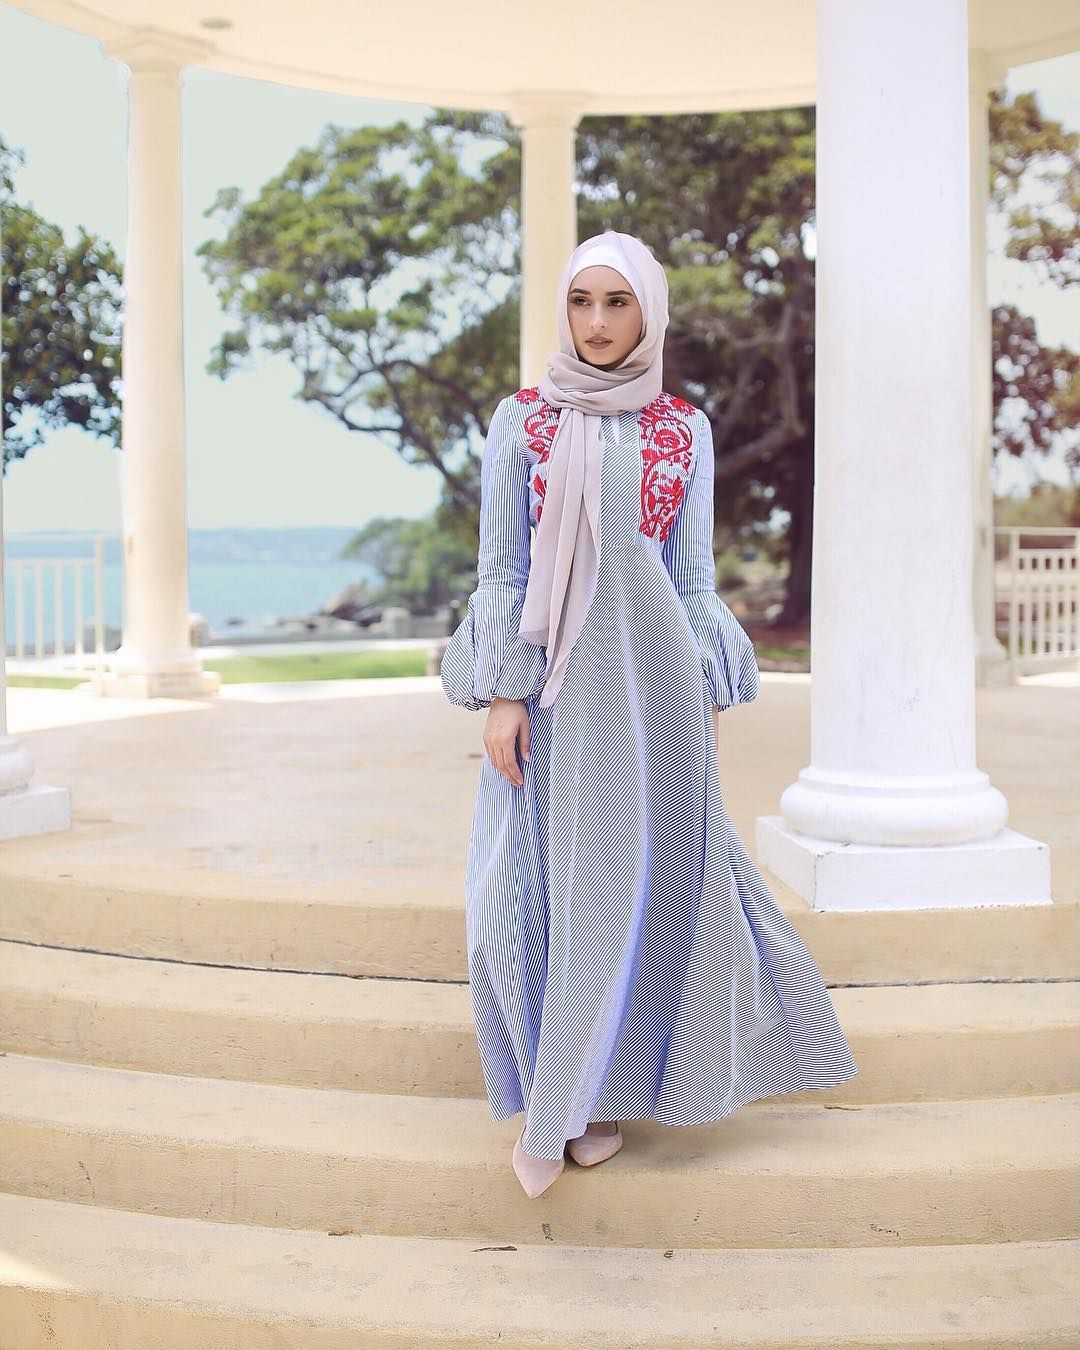 Hijab House Hijab House On Instagram Hijab House S Slayage Of Modern Casual Maxis Continues With This Number We Love Nawa Dresses Balloon Dress Outfits